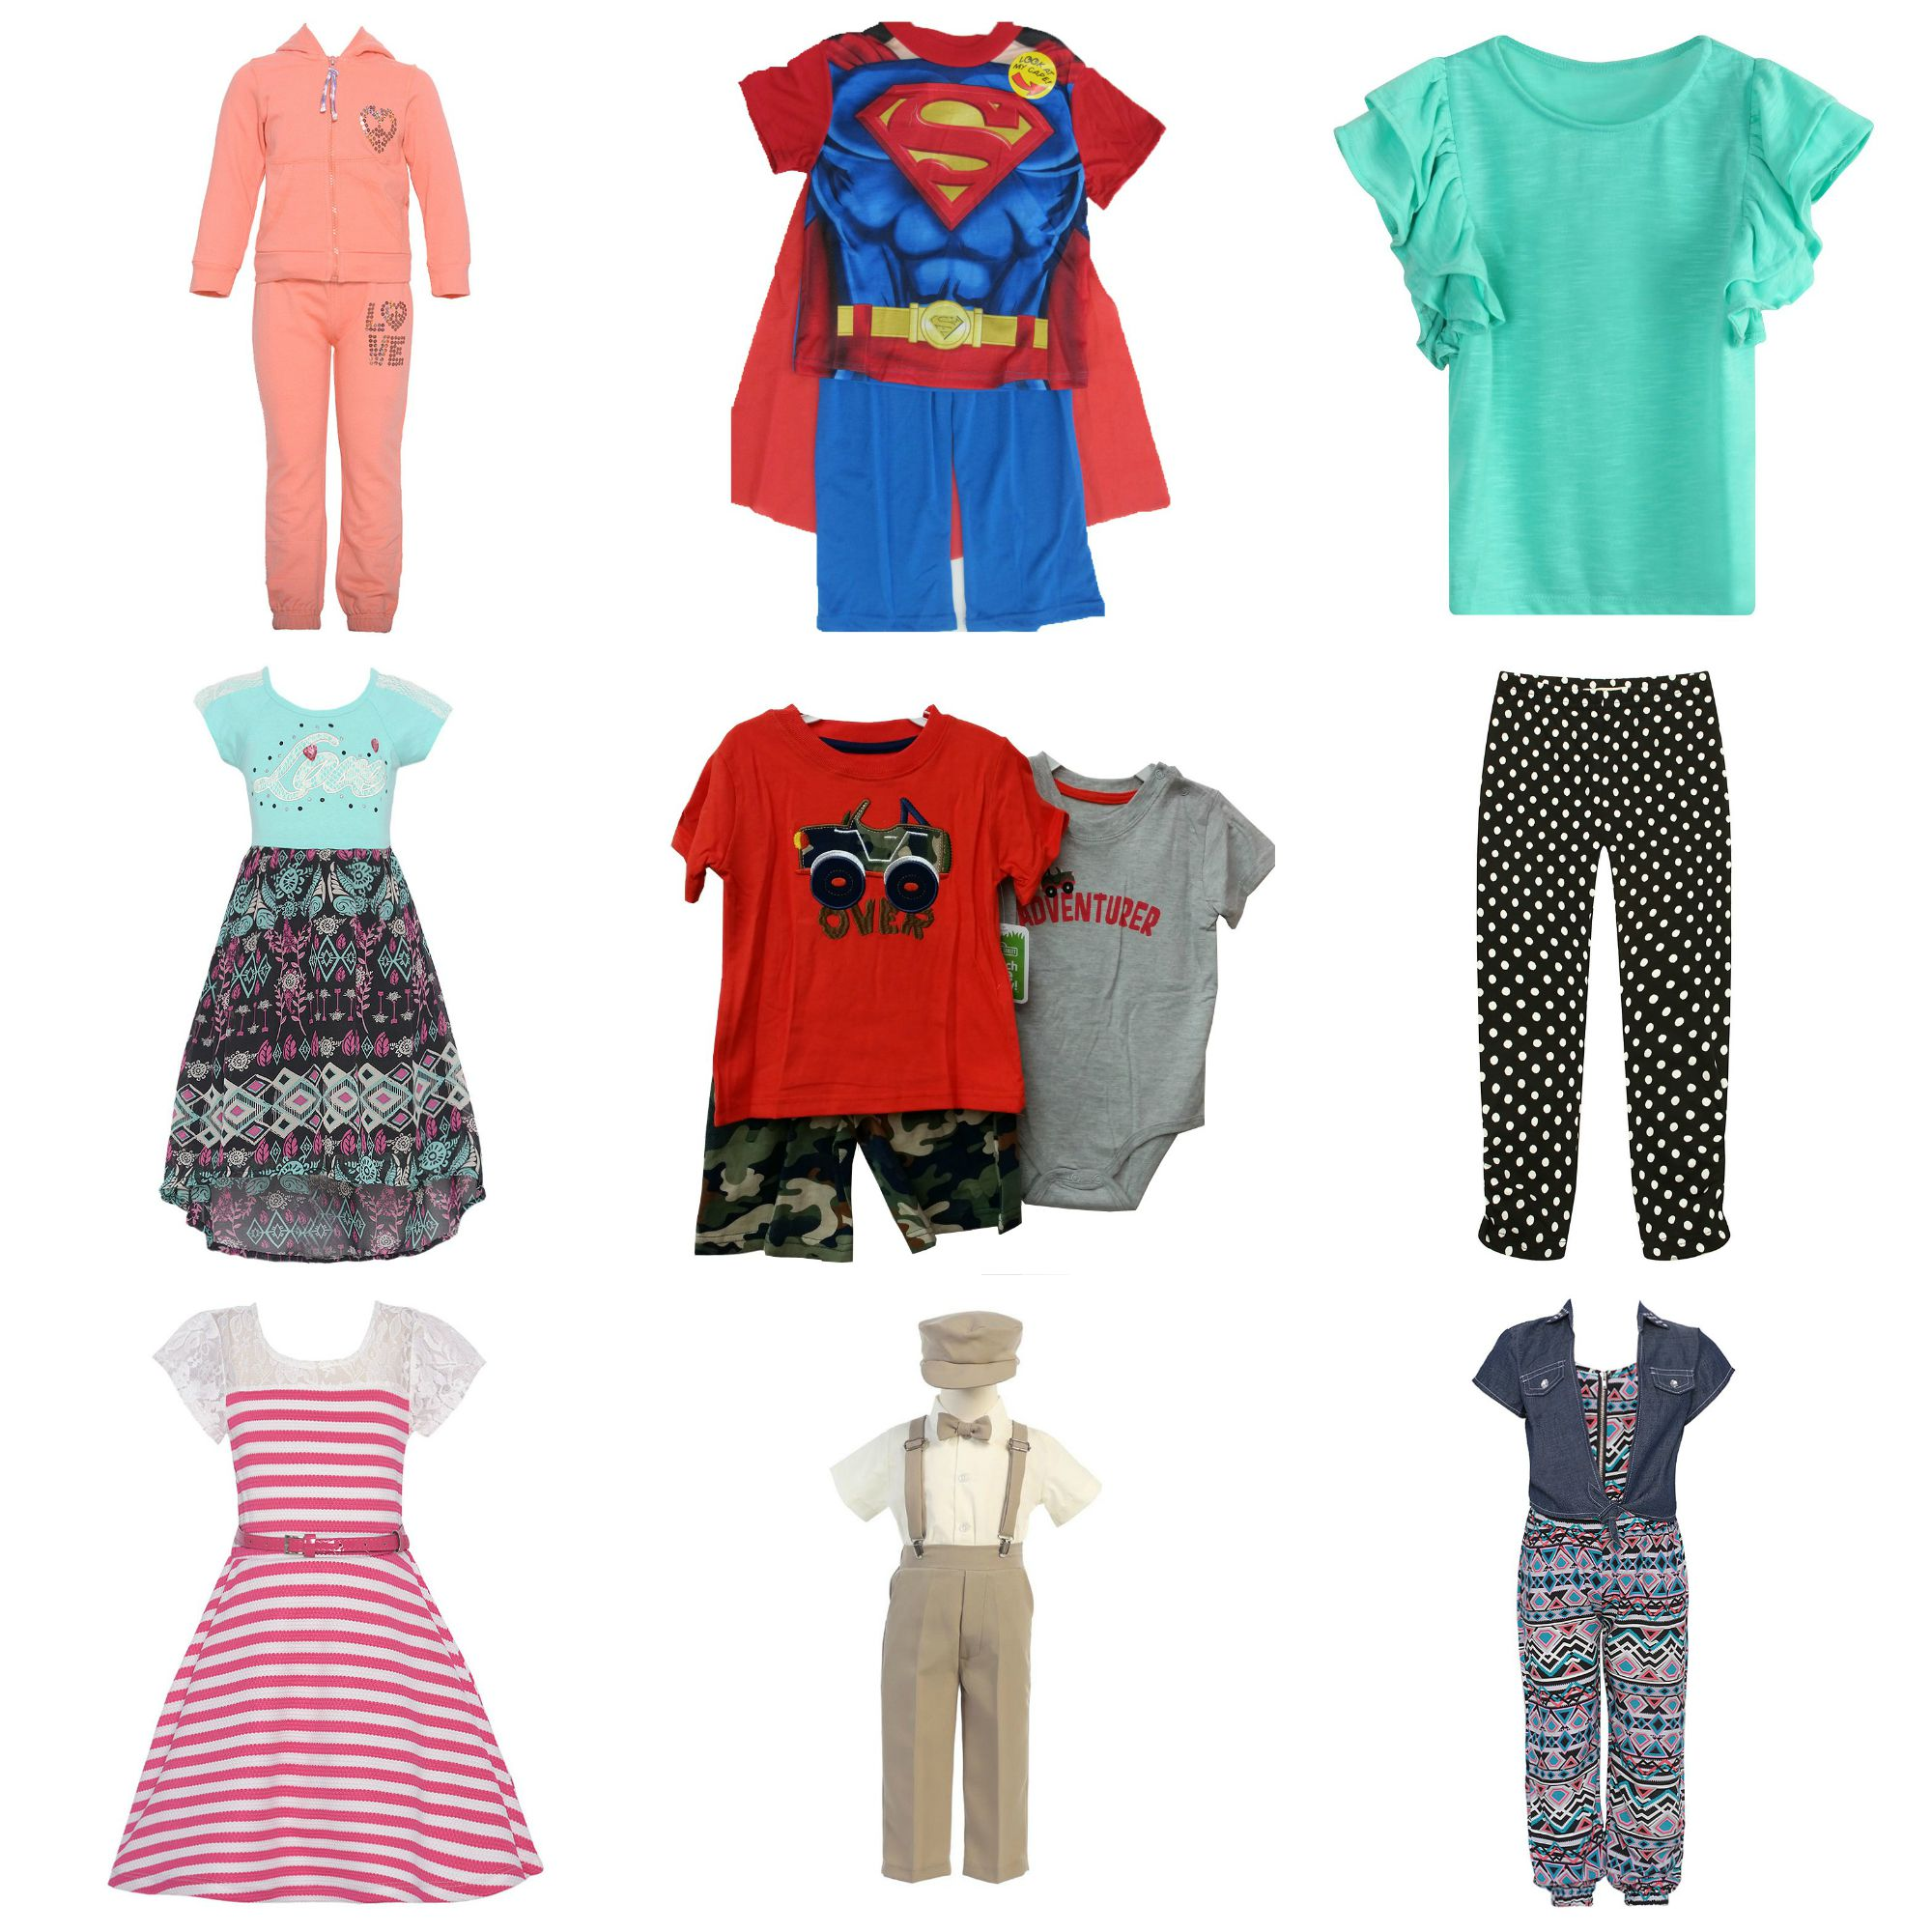 Cute Clothing Outfits